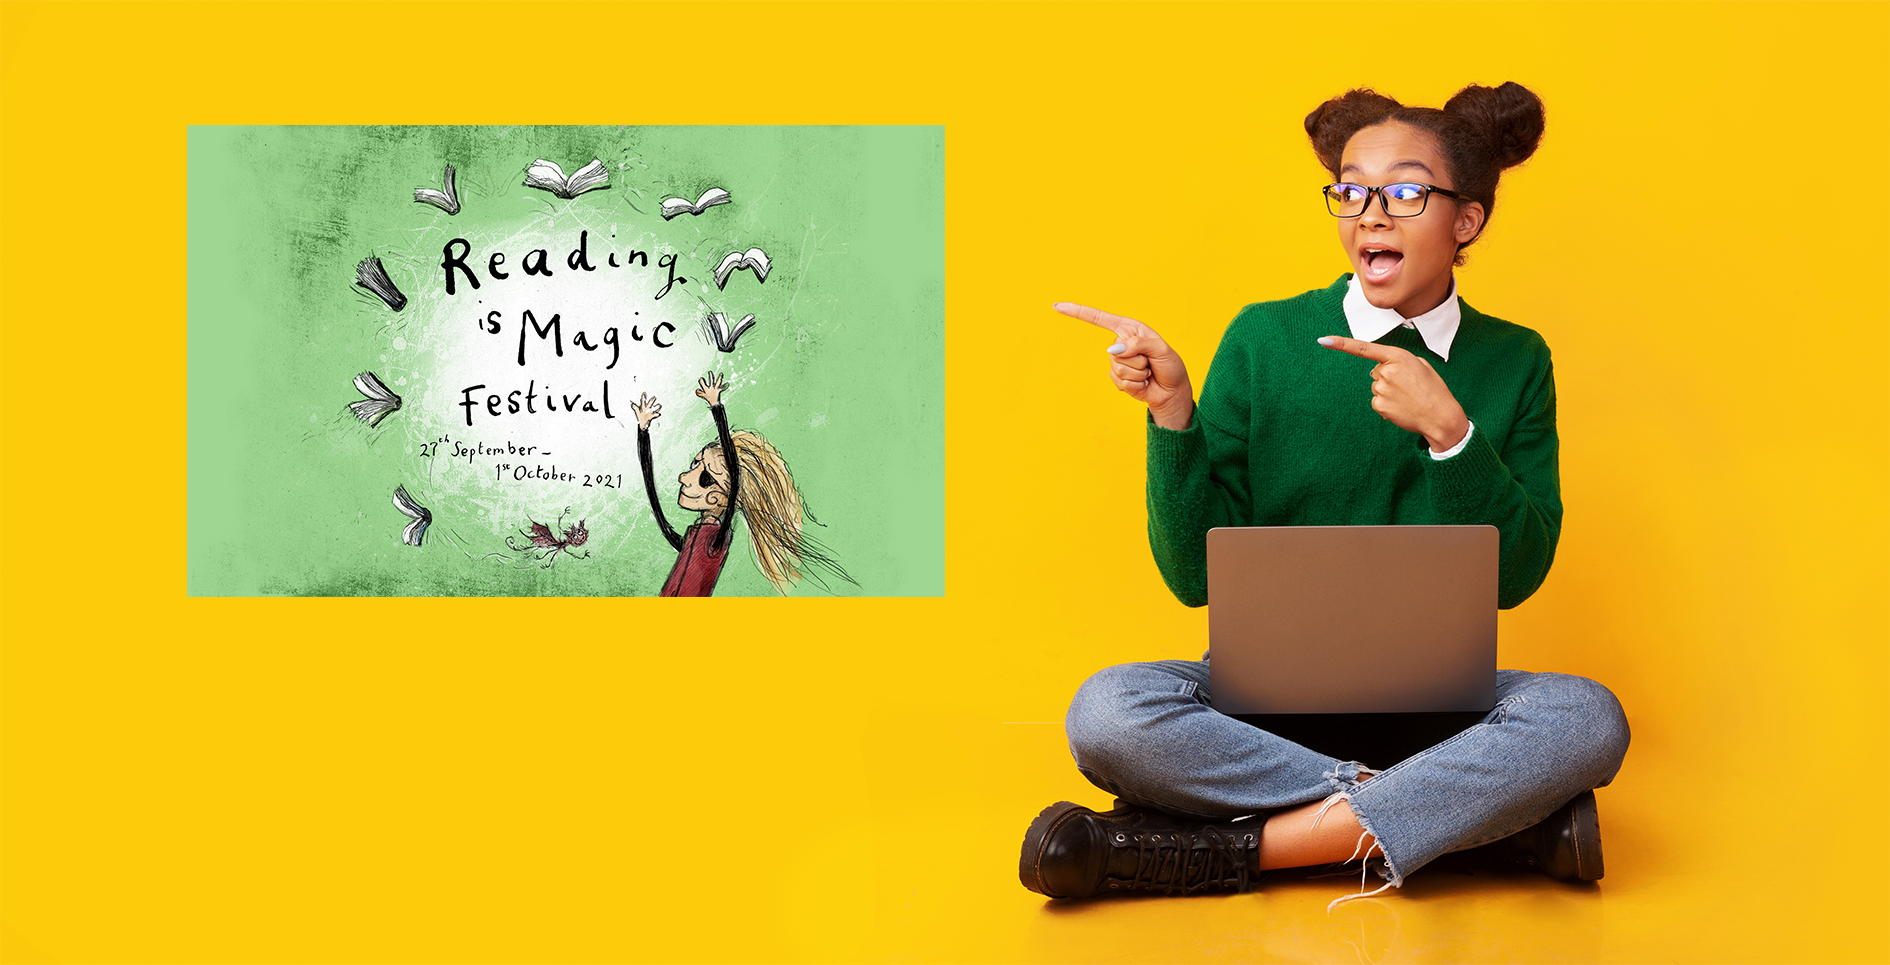 Image shows a young woman sitting crossed legged, she is pointing at the Reading is Magic Festival poster